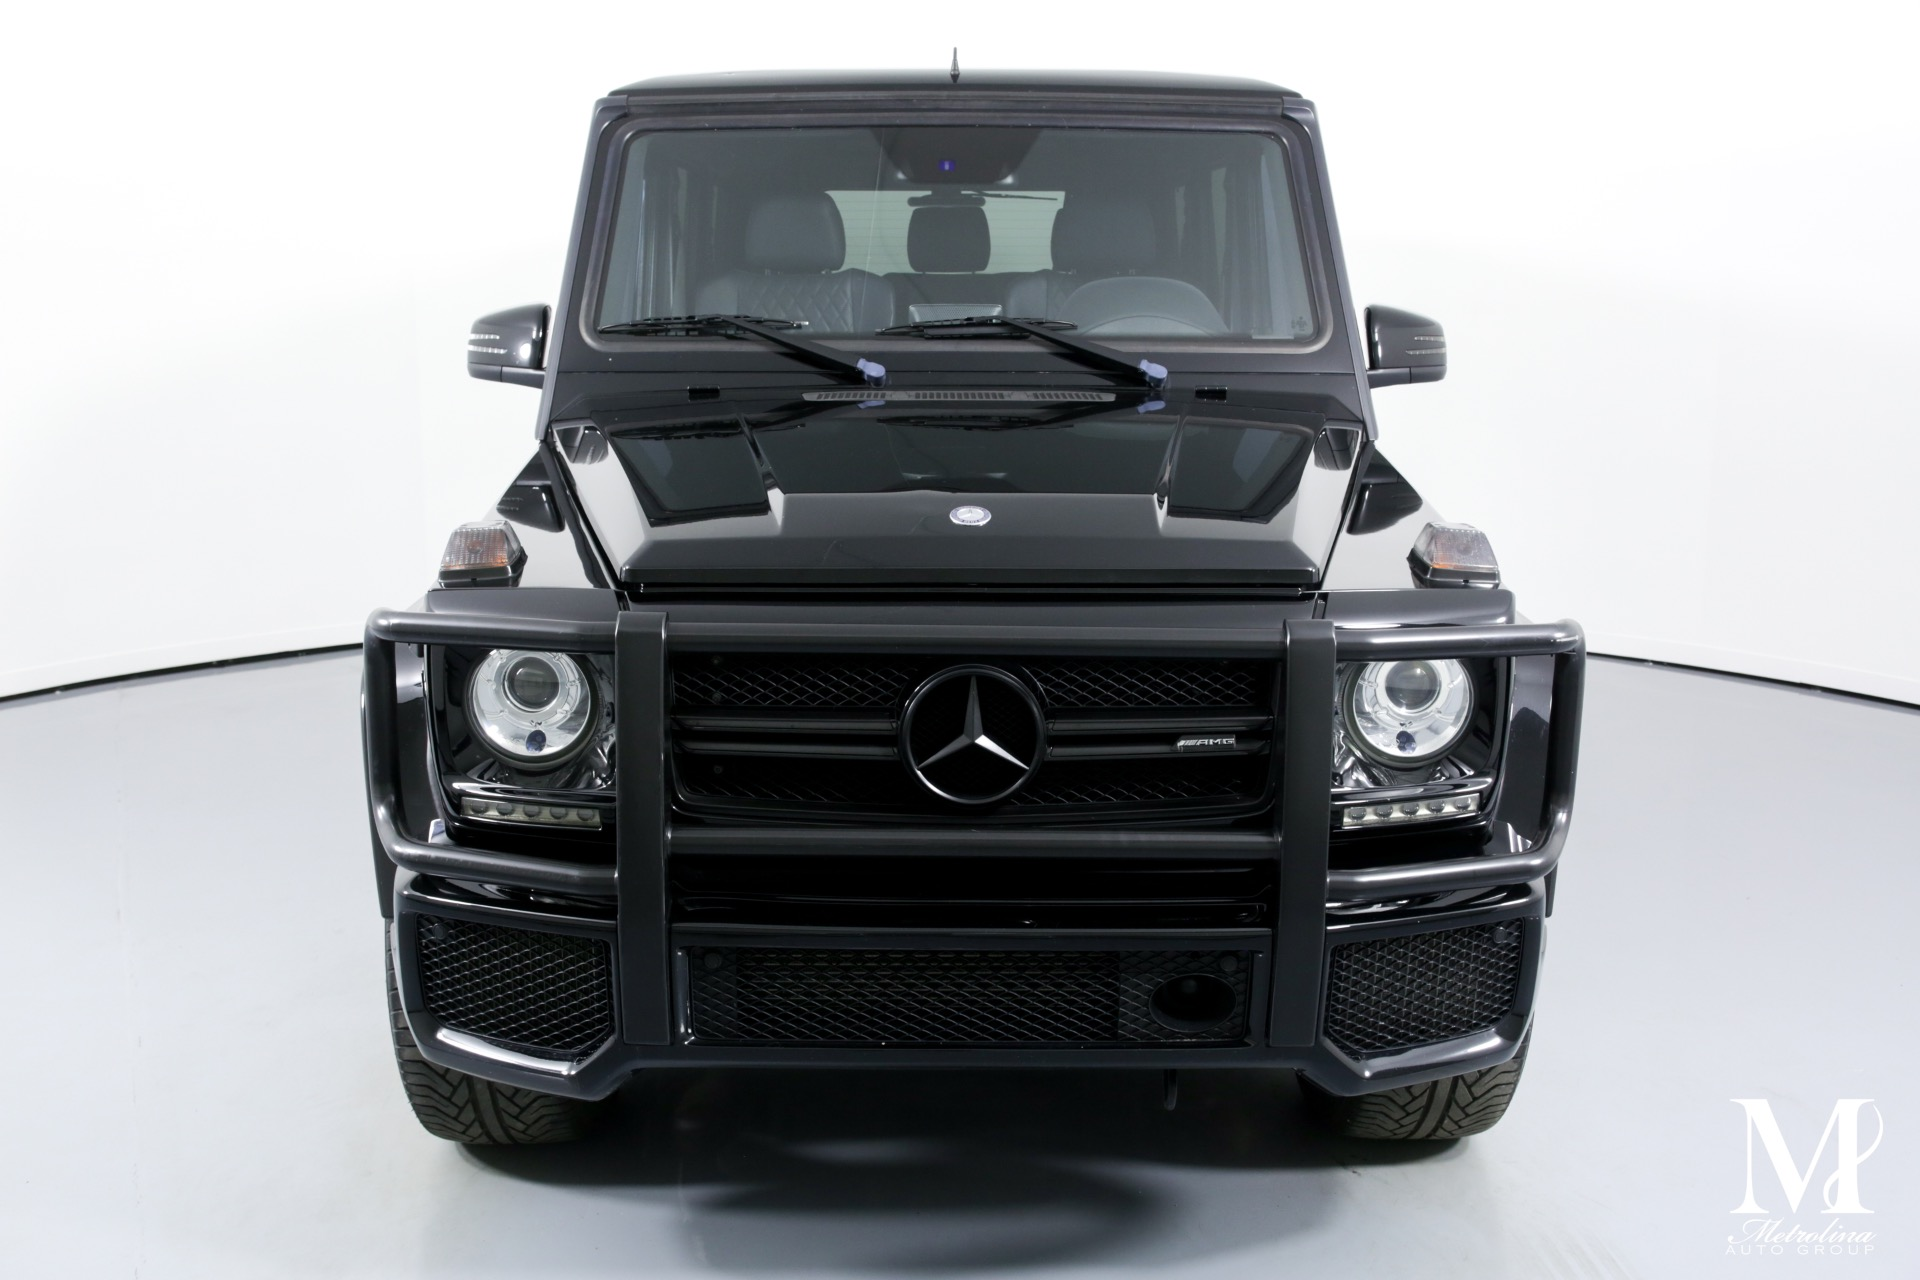 Used 2015 Mercedes-Benz G-Class G 63 AMG for sale Sold at Metrolina Auto Group in Charlotte NC 28217 - 3